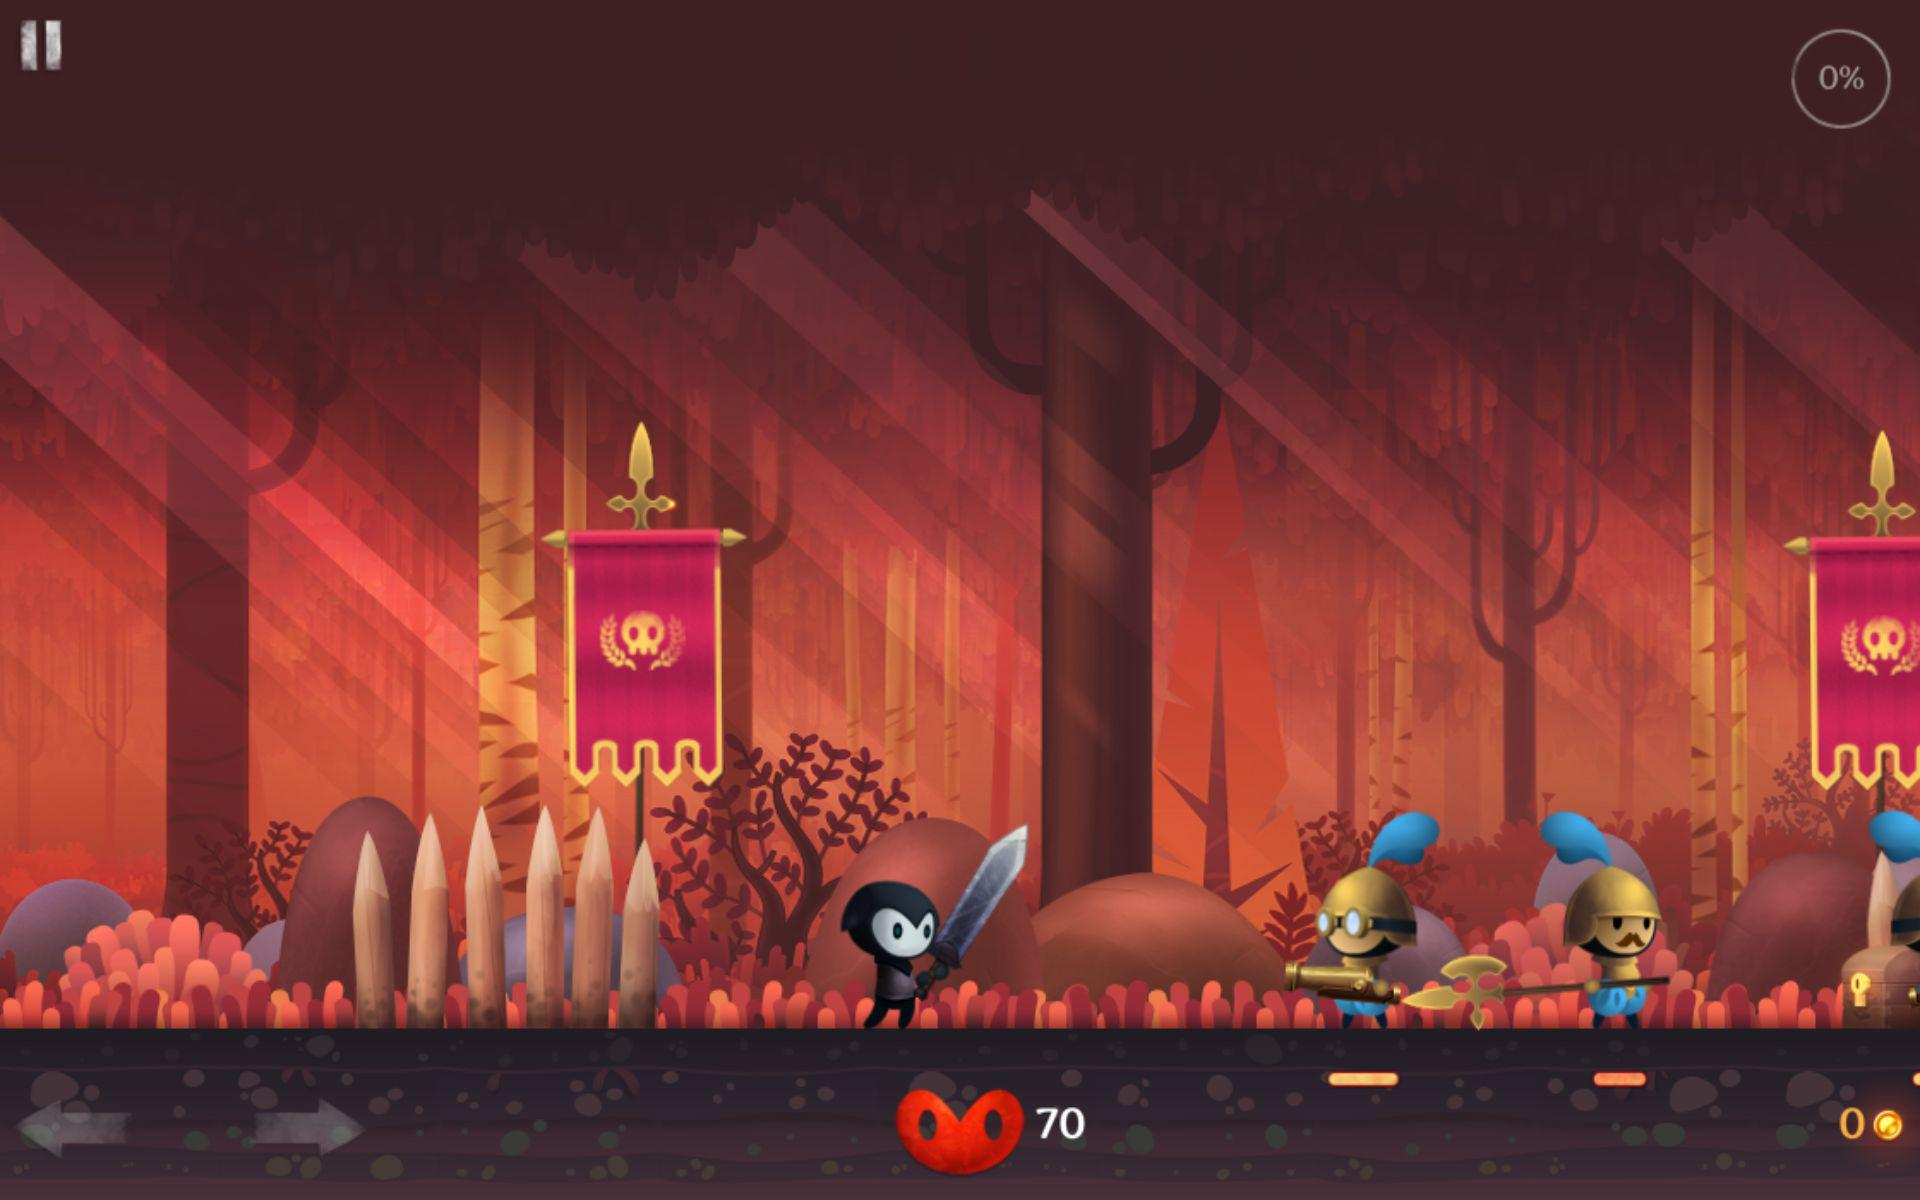 Reaper je 2D side scrolling RPG hra pro Android